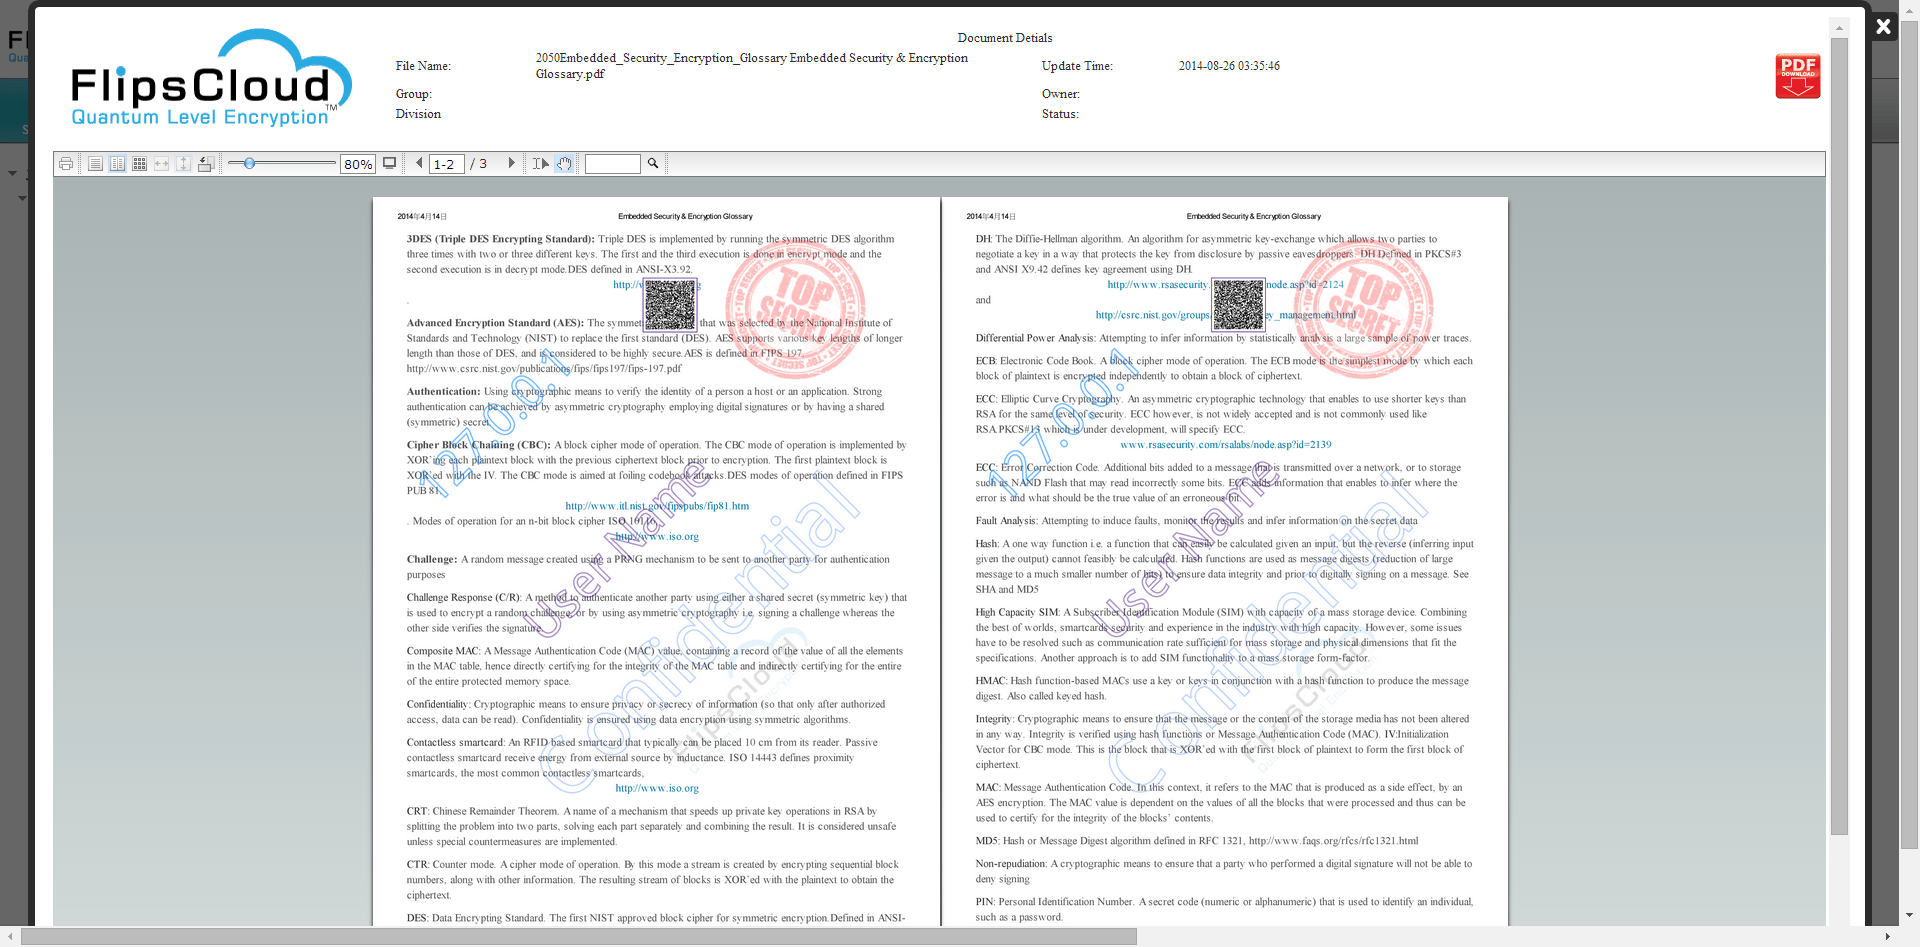 Document online viewer